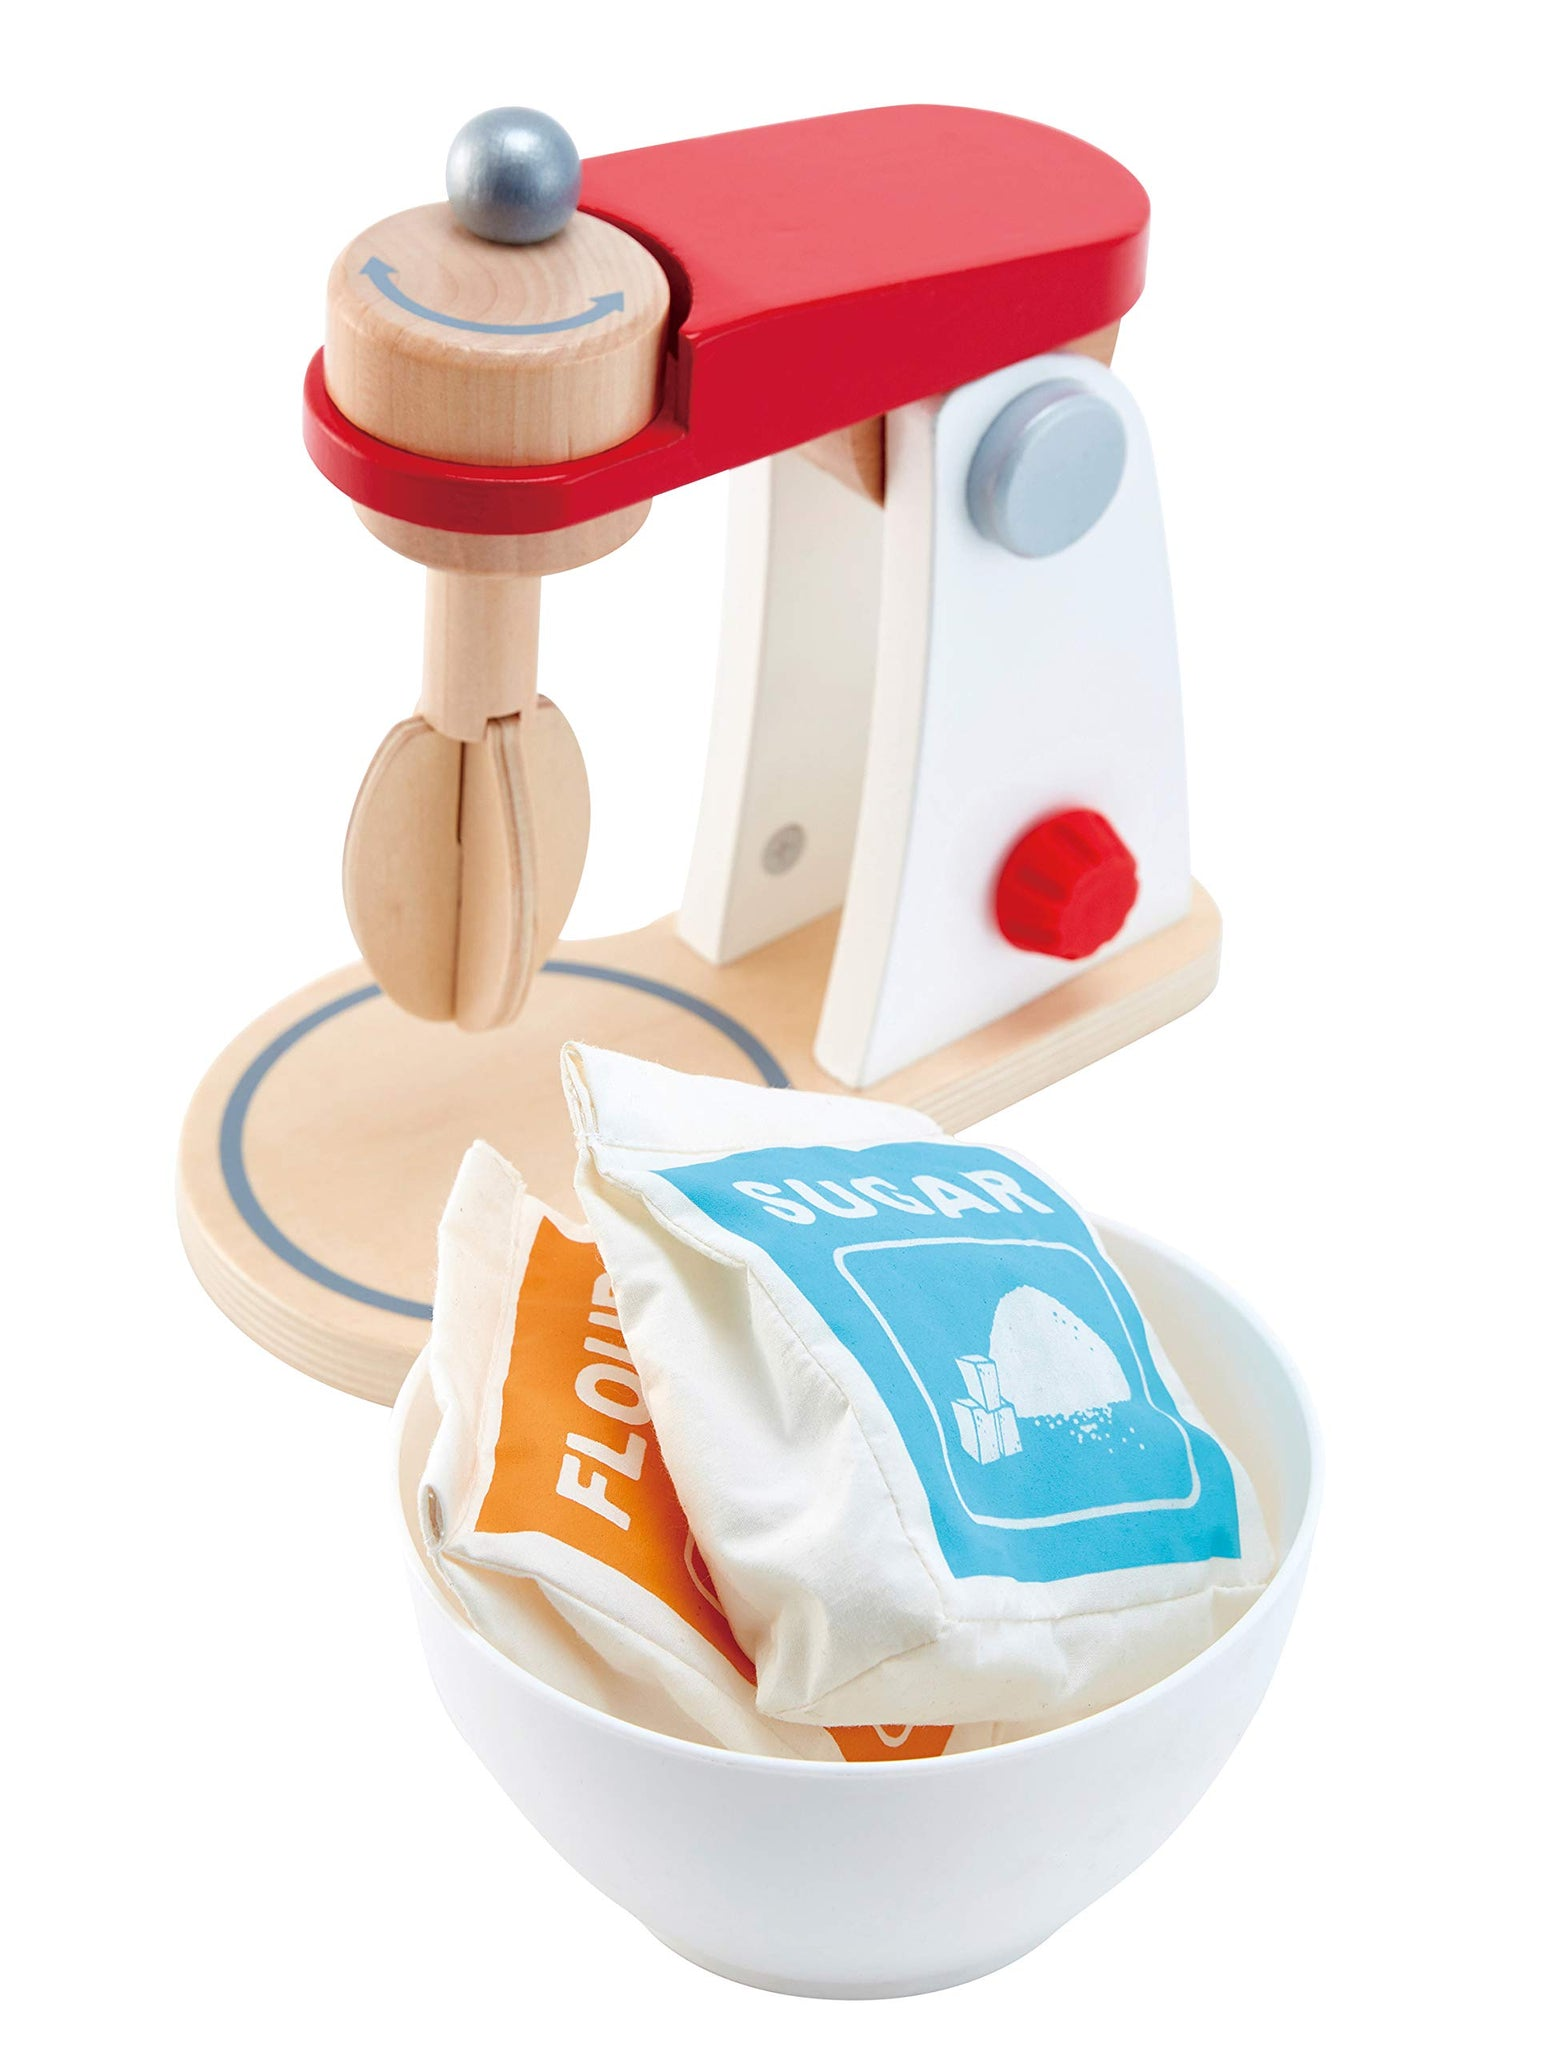 Hape White Wooden Kitchen Mix & Bake Blender Toy, Playfully Delicious Mighty Mixer, Pretend Play Baking Mixer Set for Kids Preschoolers